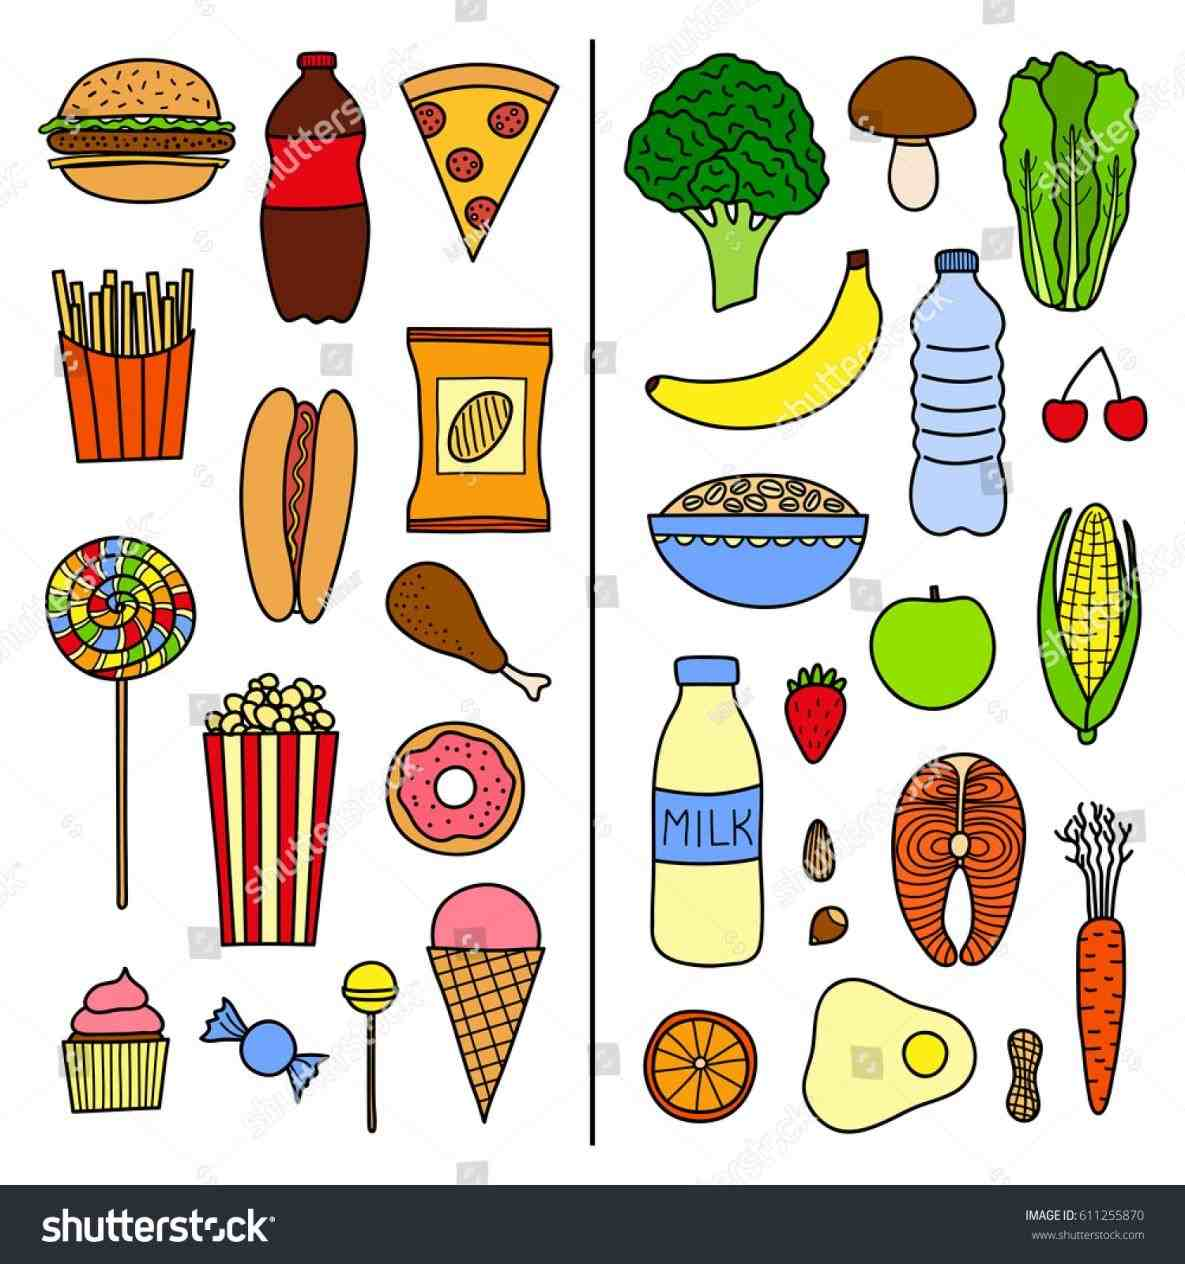 Unhealthy Foods Clipart 10 Free Cliparts